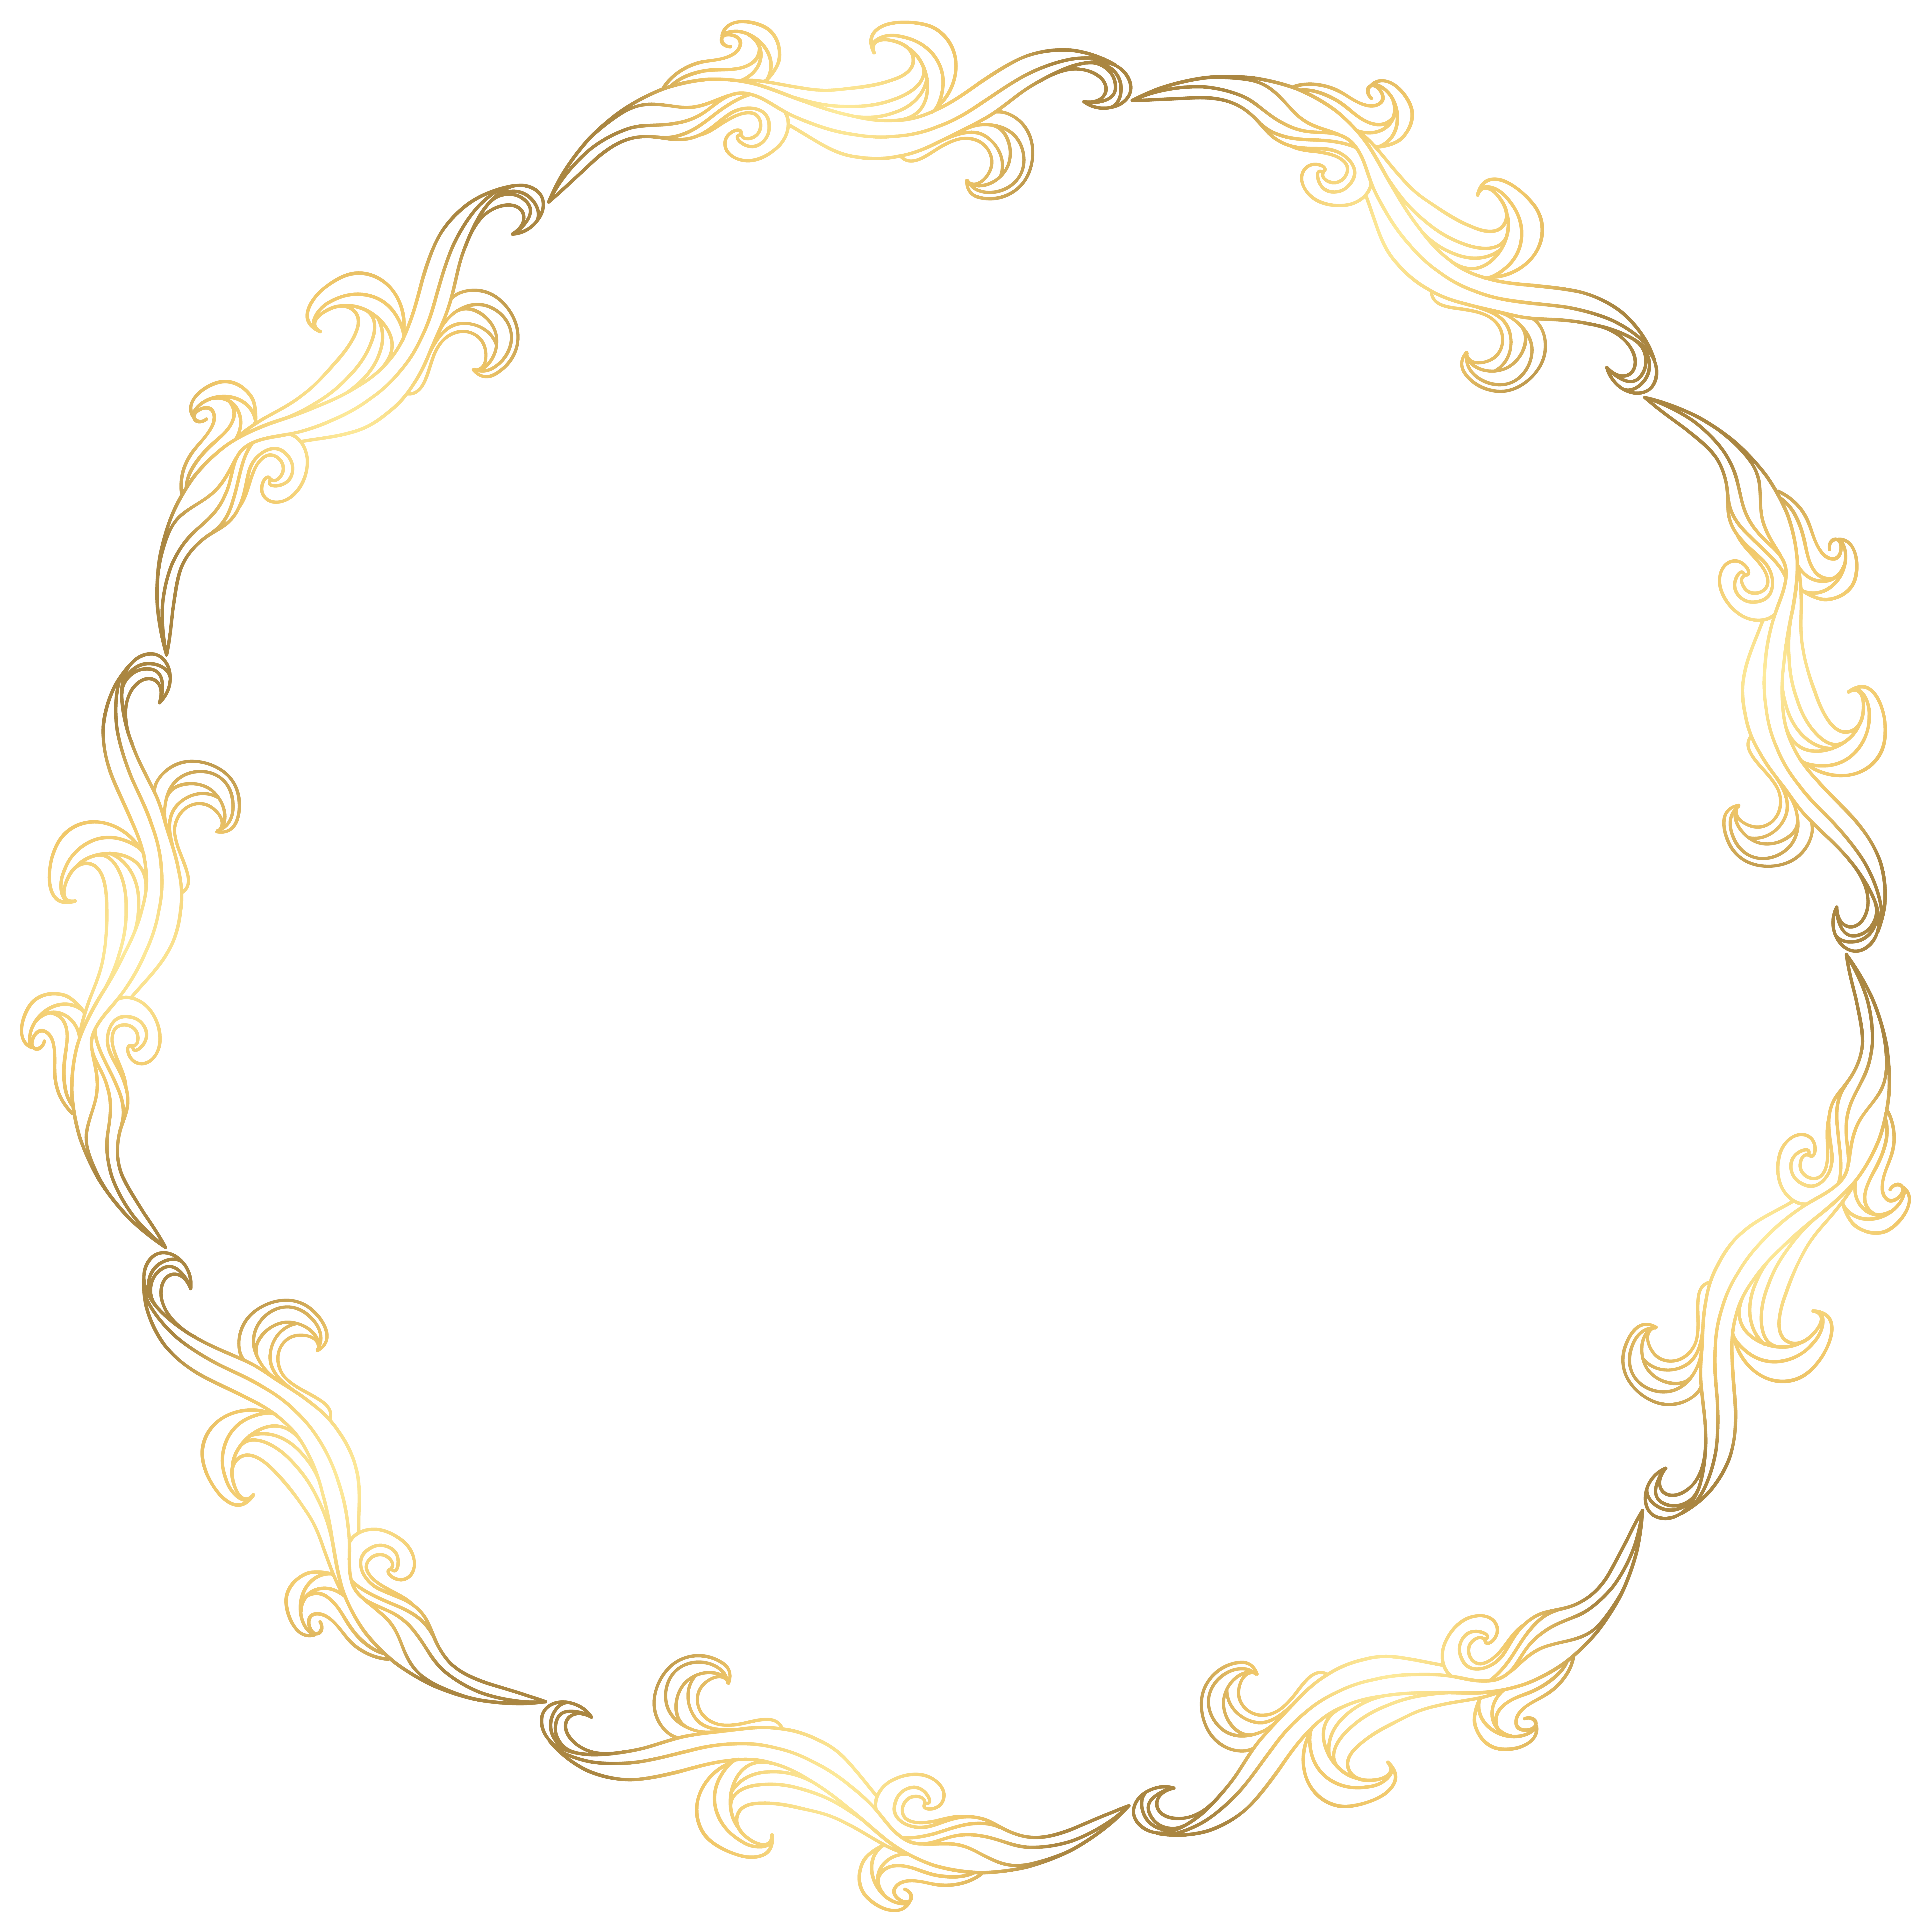 Clipart borders wheat. Floral gold round border